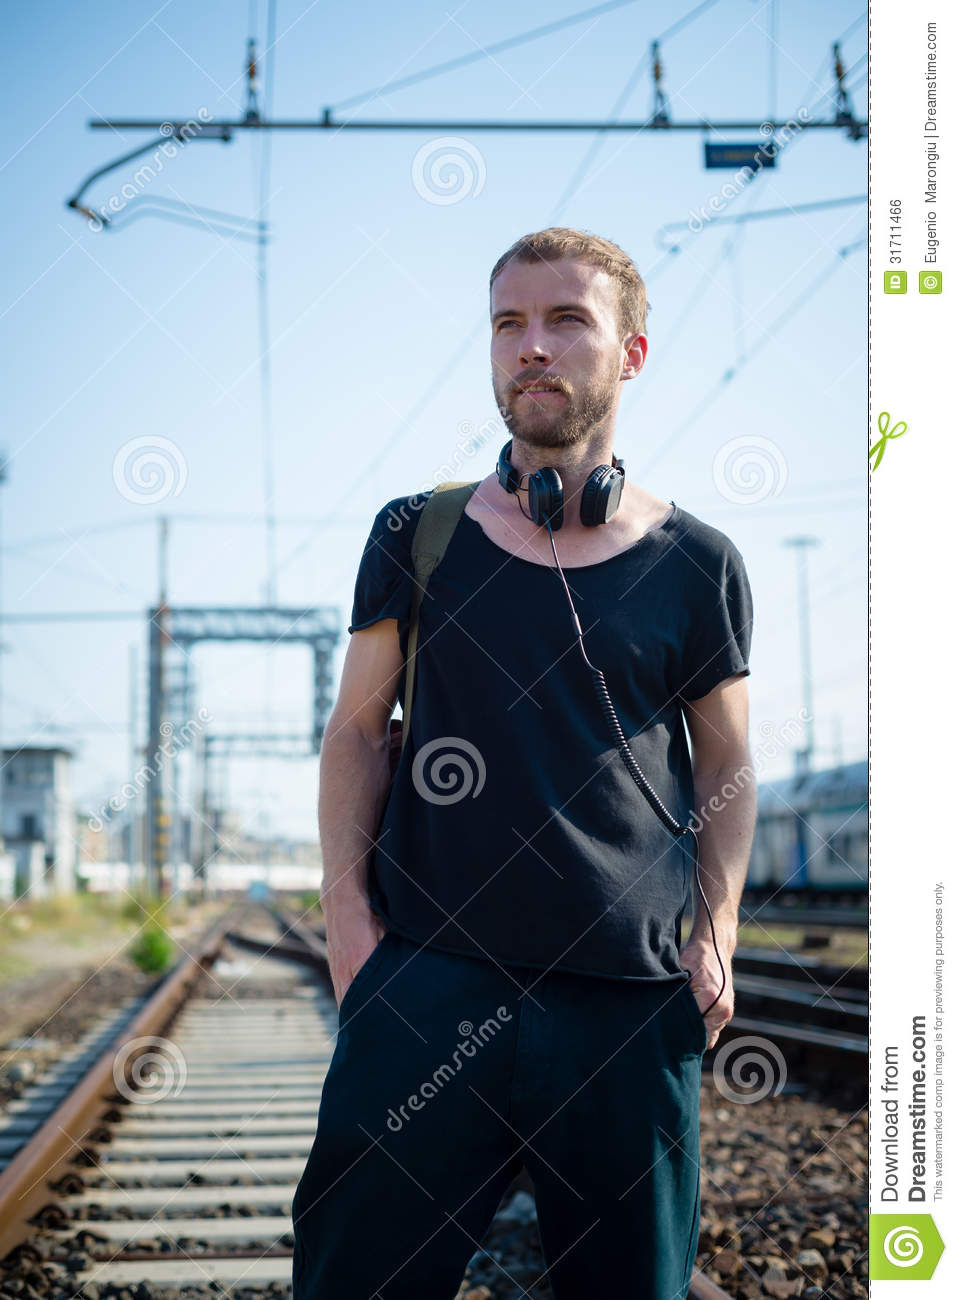 Hipster Modern Stylish Blonde Man On Rails Stock Photo ...